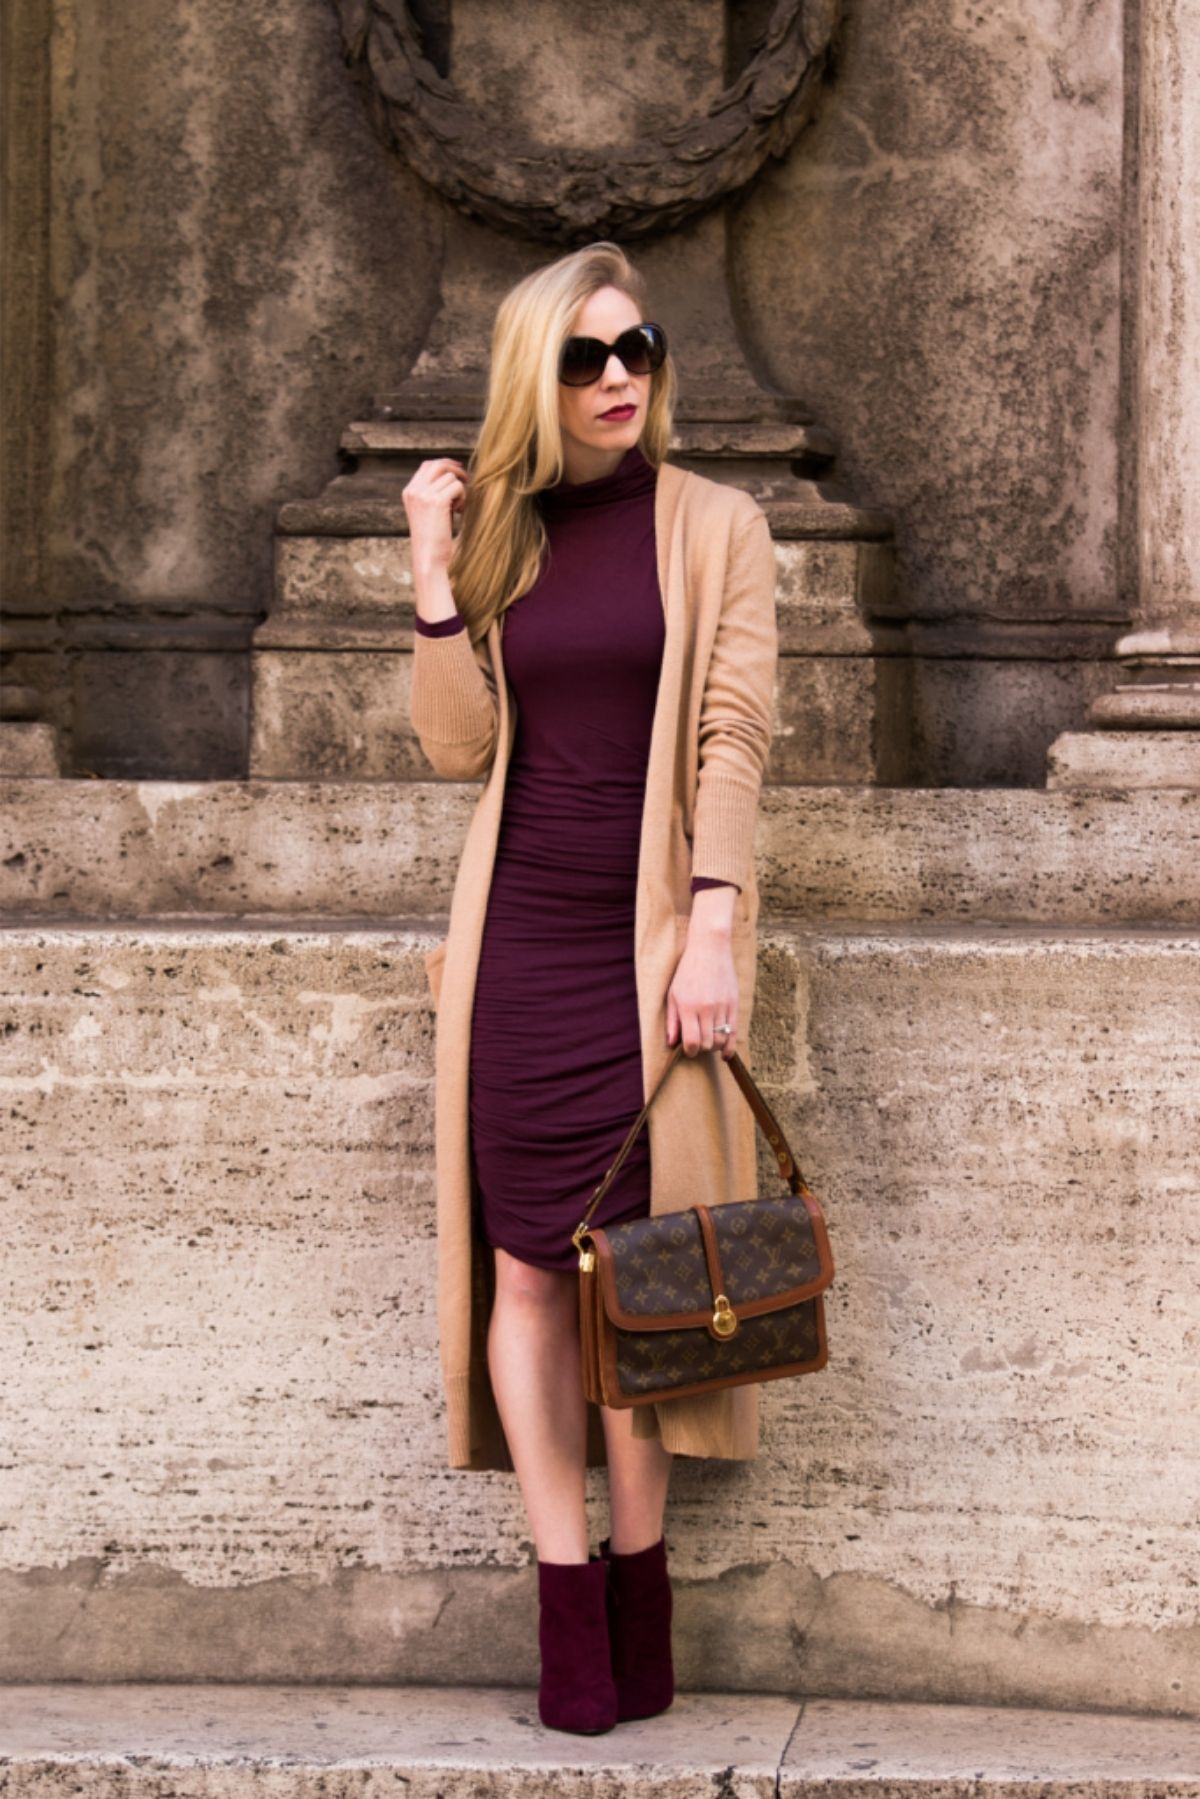 styling cardigan with a dress